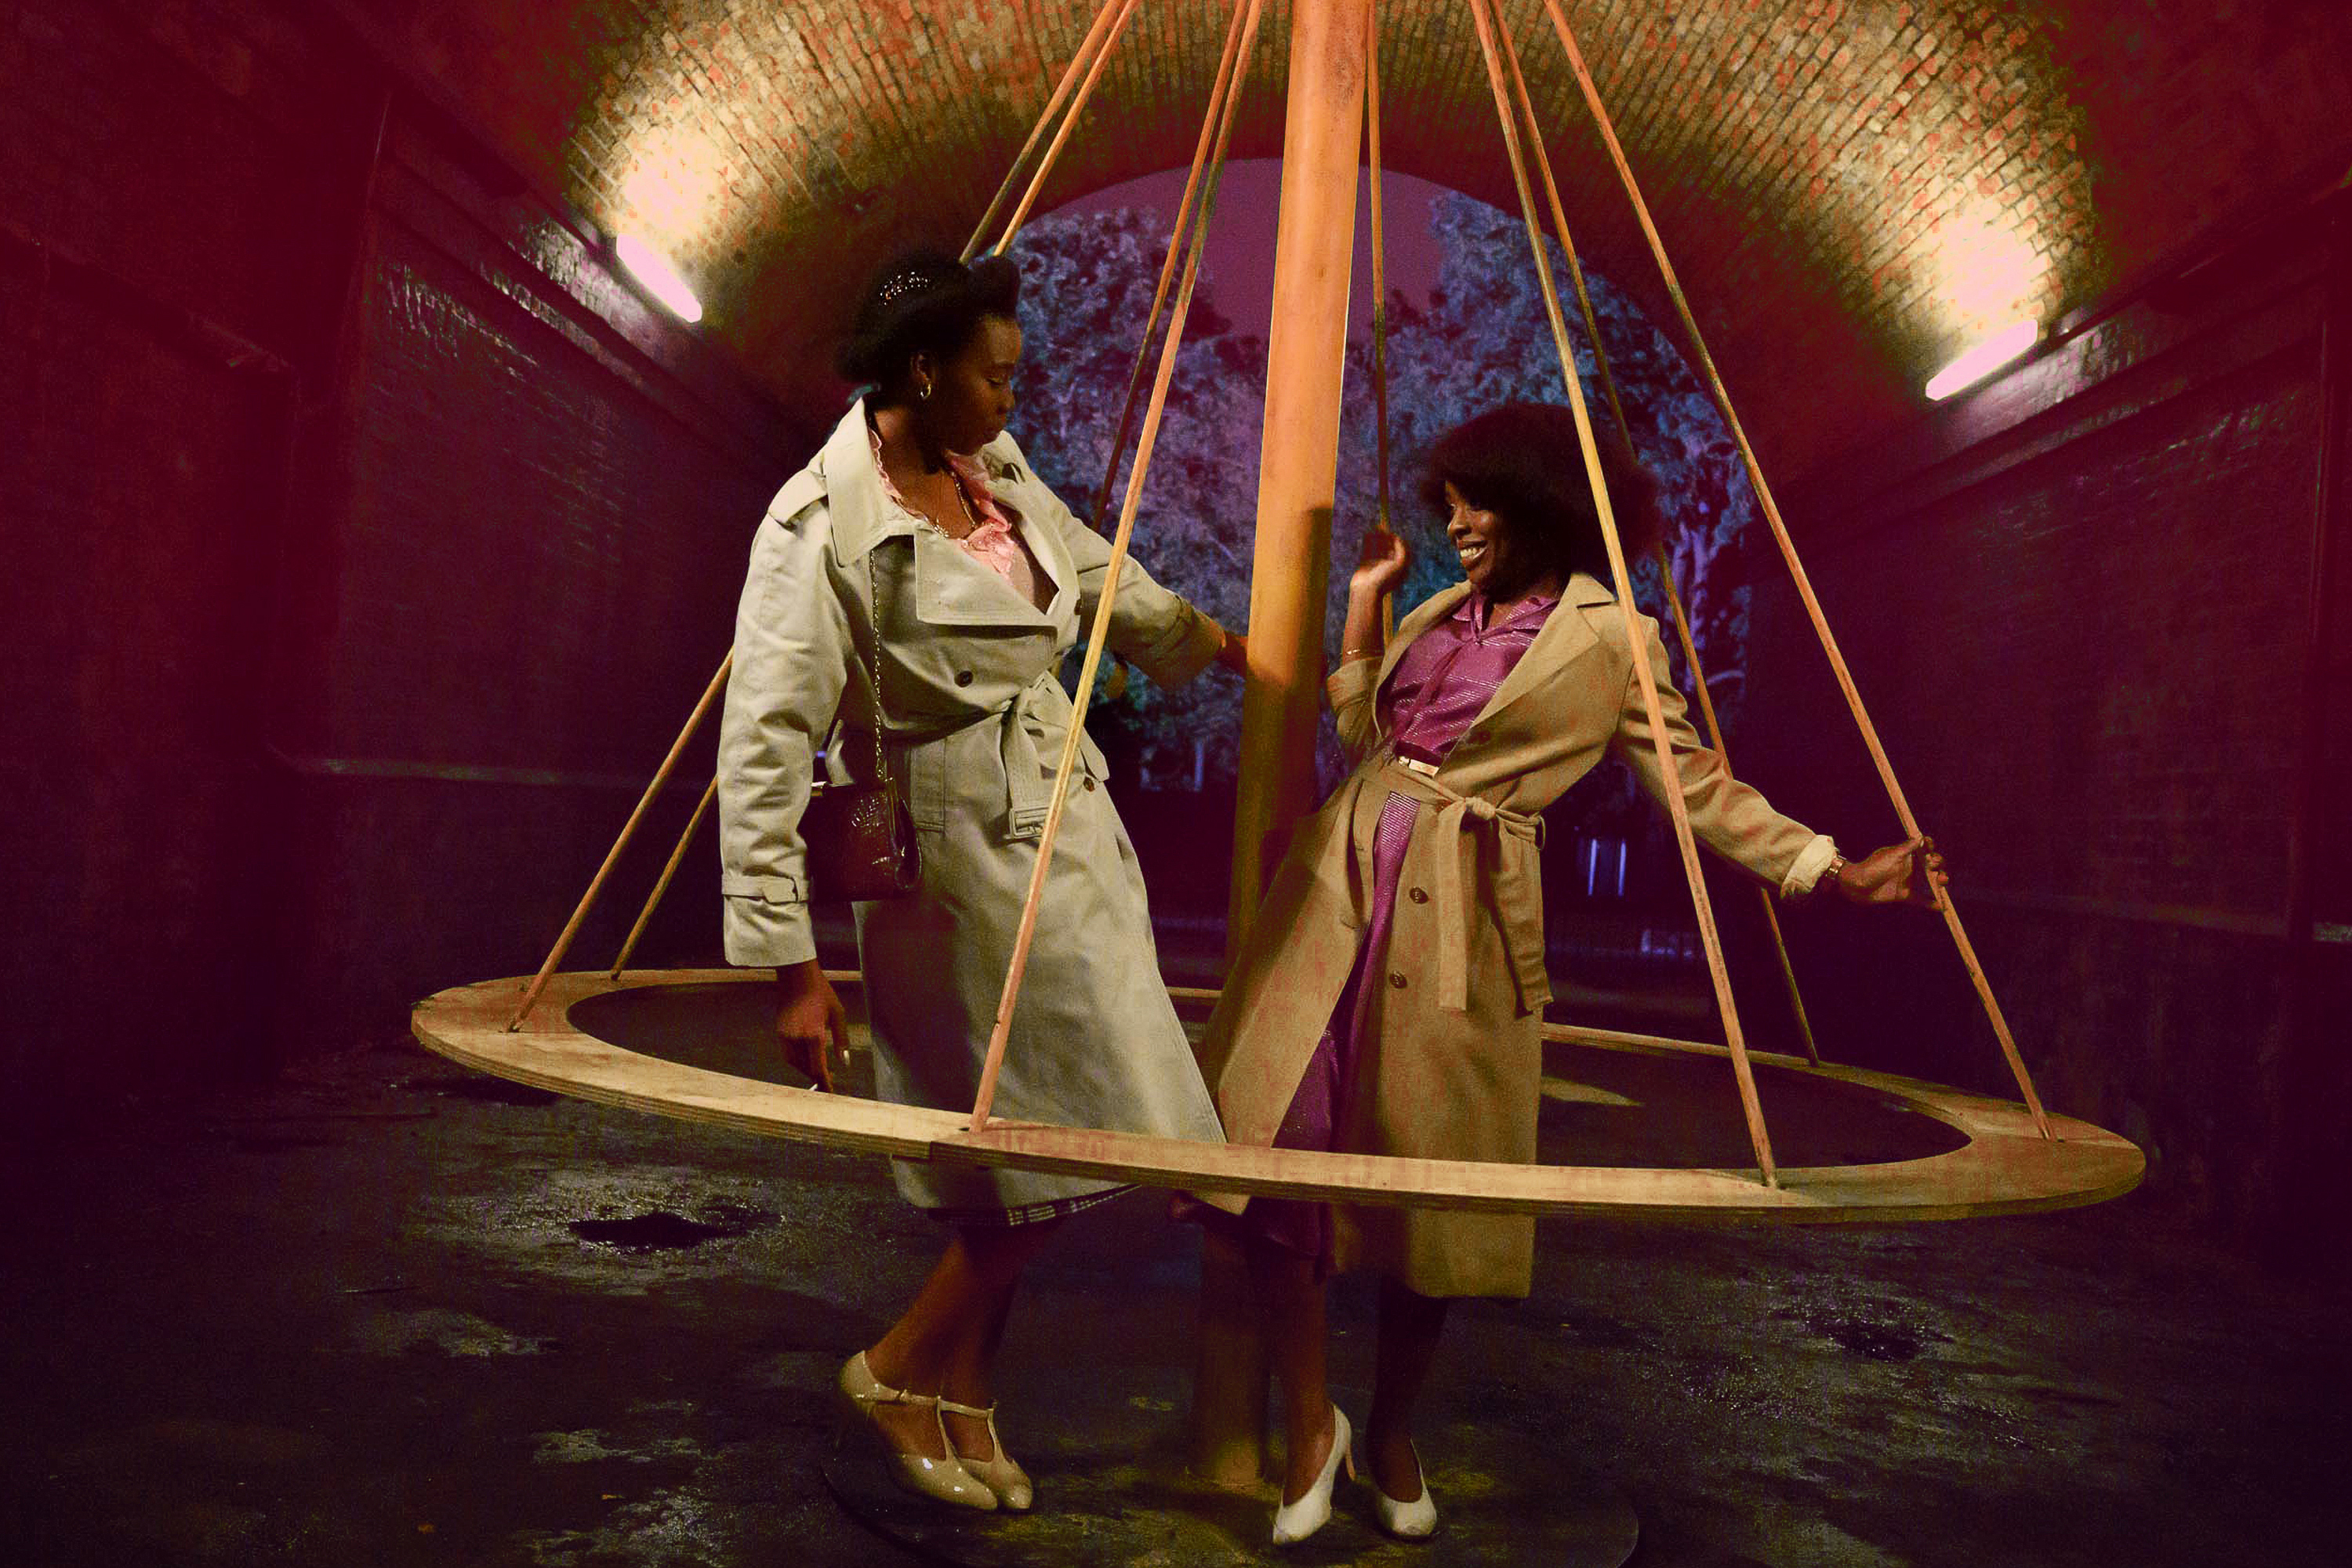 Two women stand inside a large spinning top